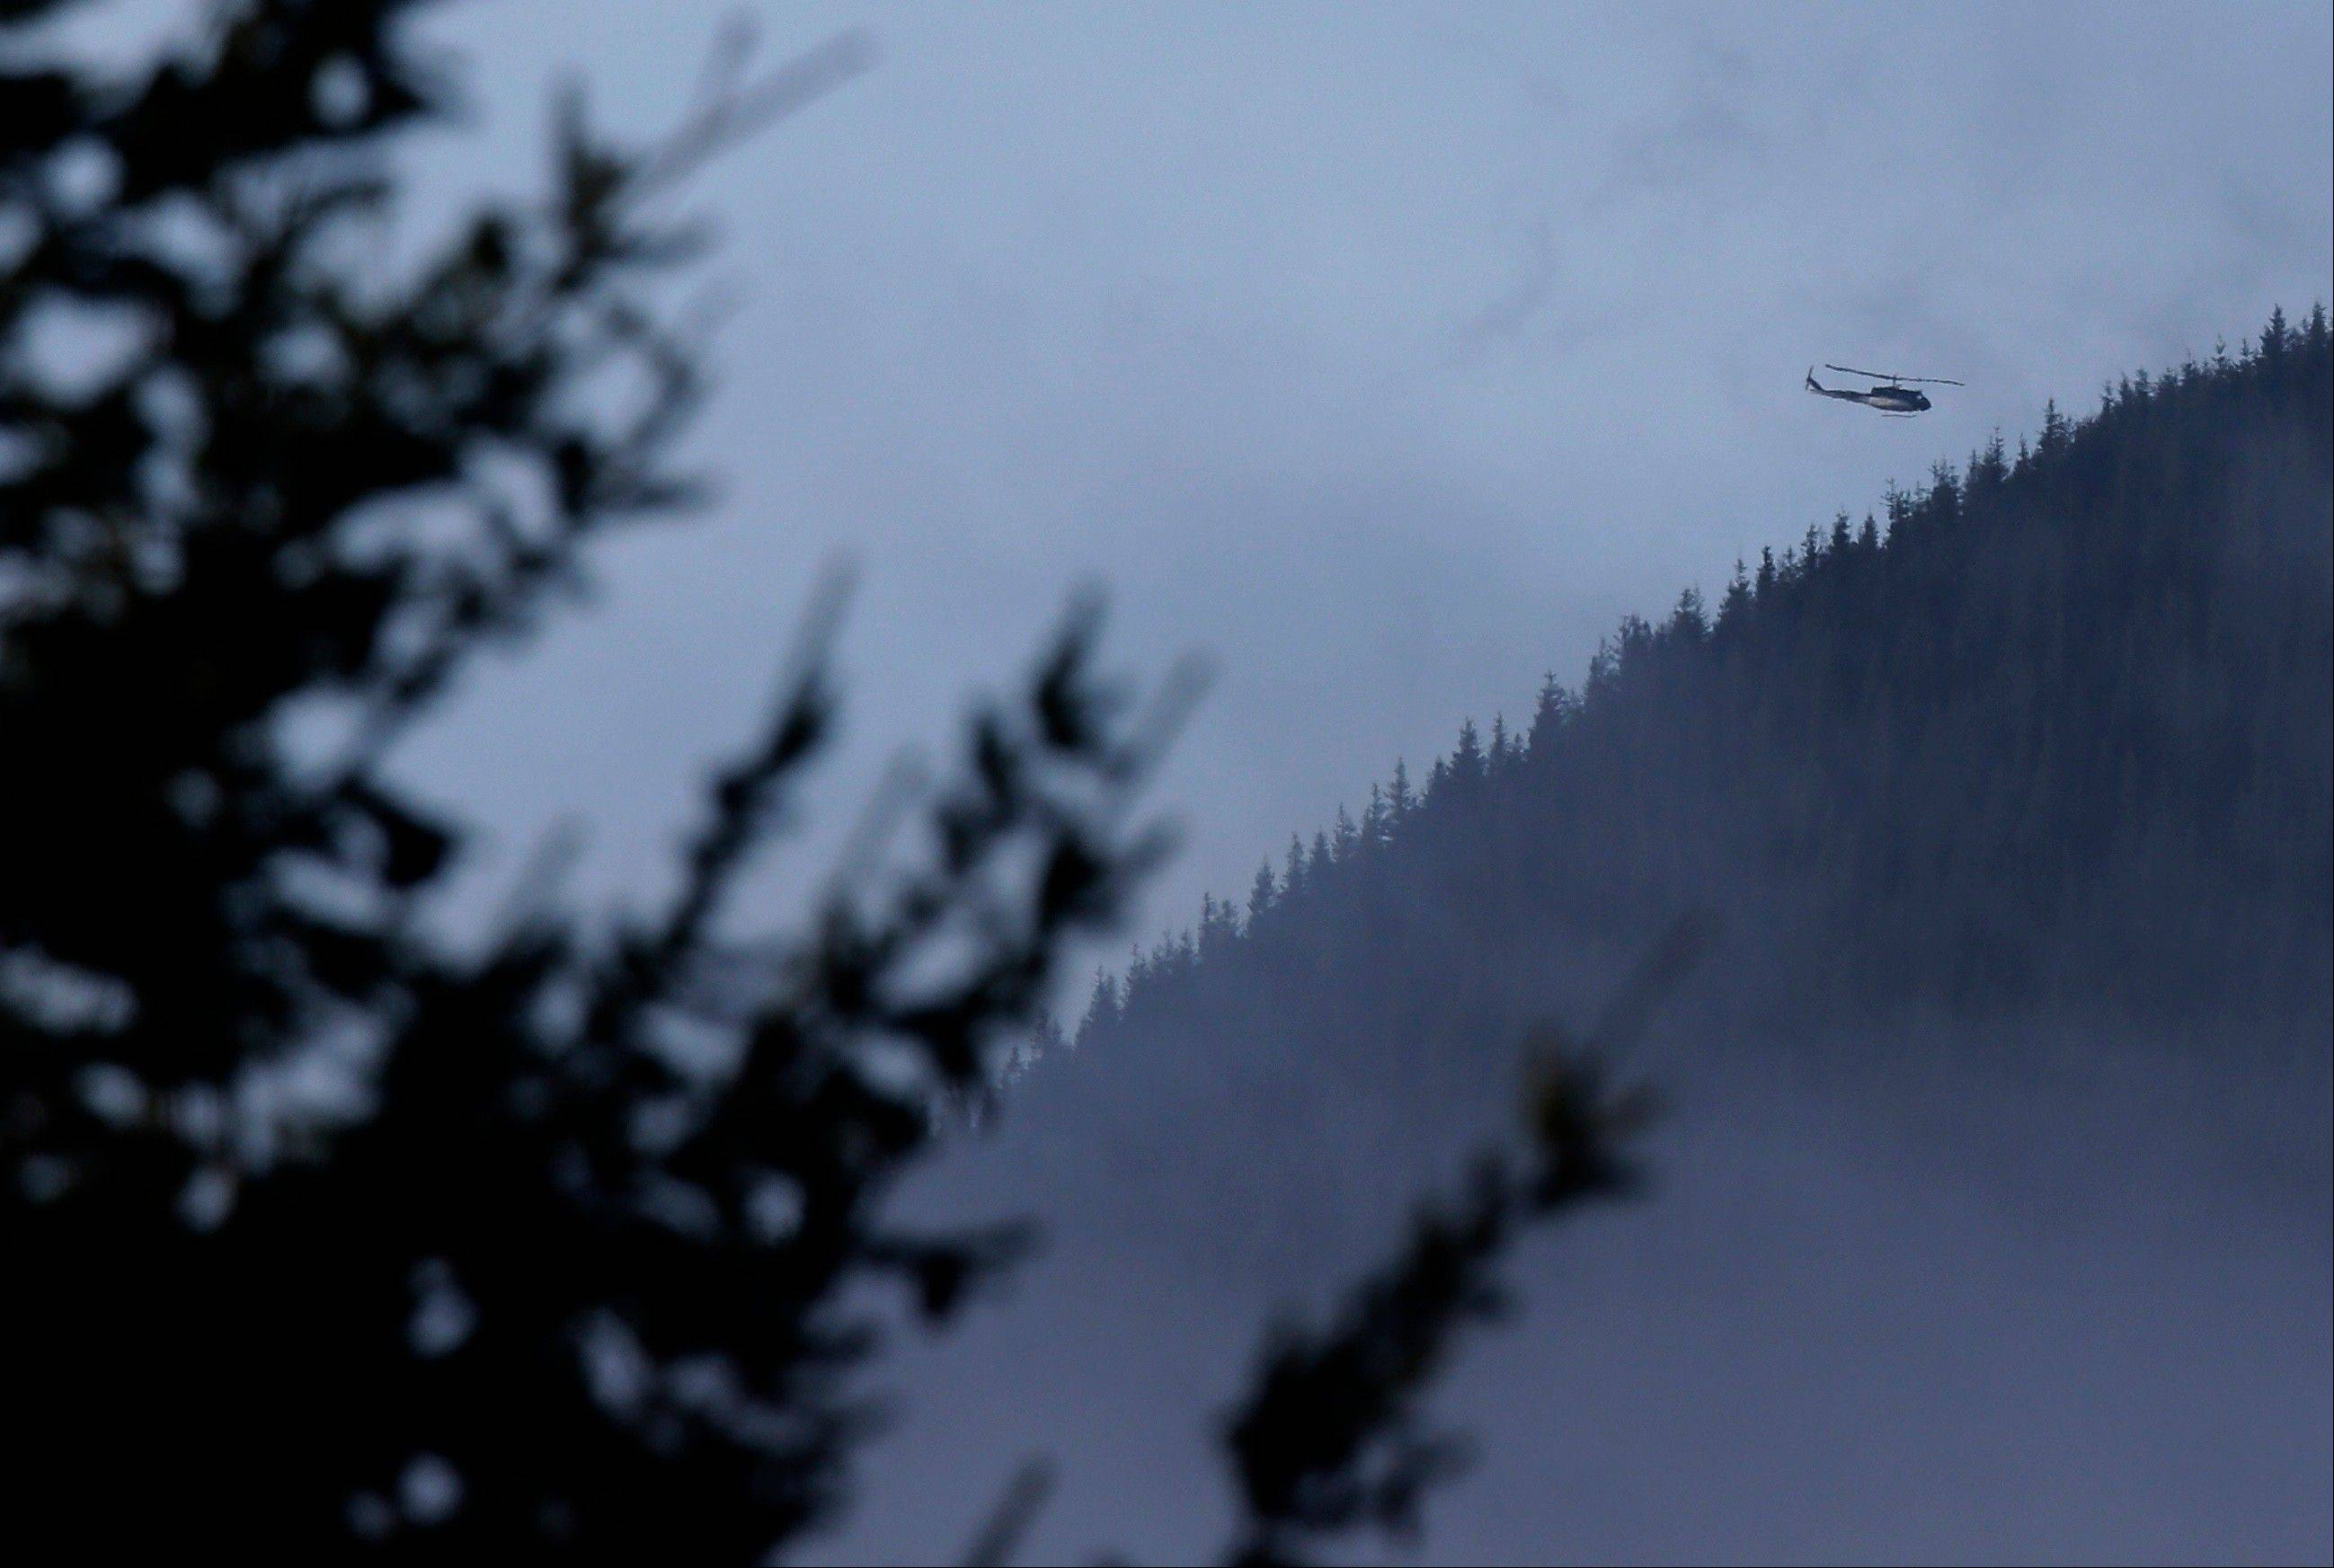 A King County Sheriff's Dept. helicopter flies Friday over rugged terrain near Mount Si in North Bend, Wash.